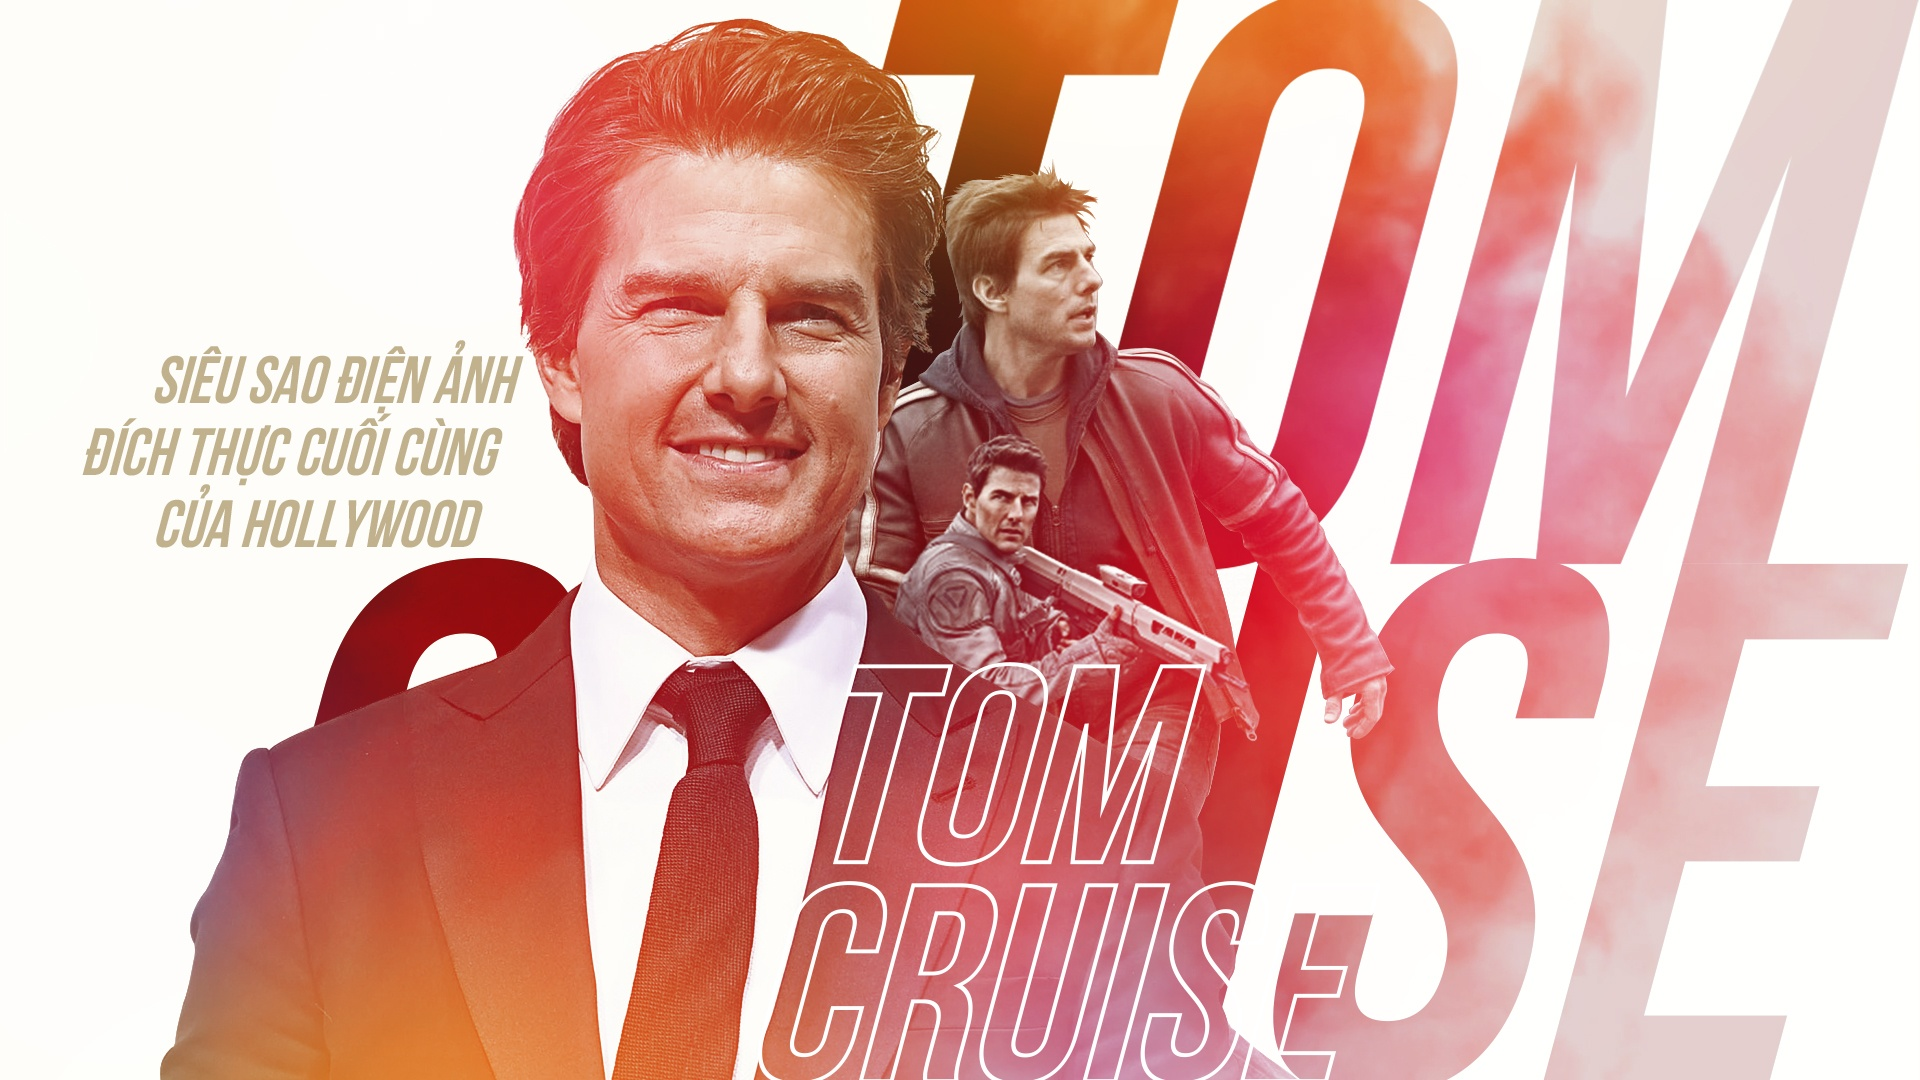 sieu sao dien anh Tom Cruise anh 2